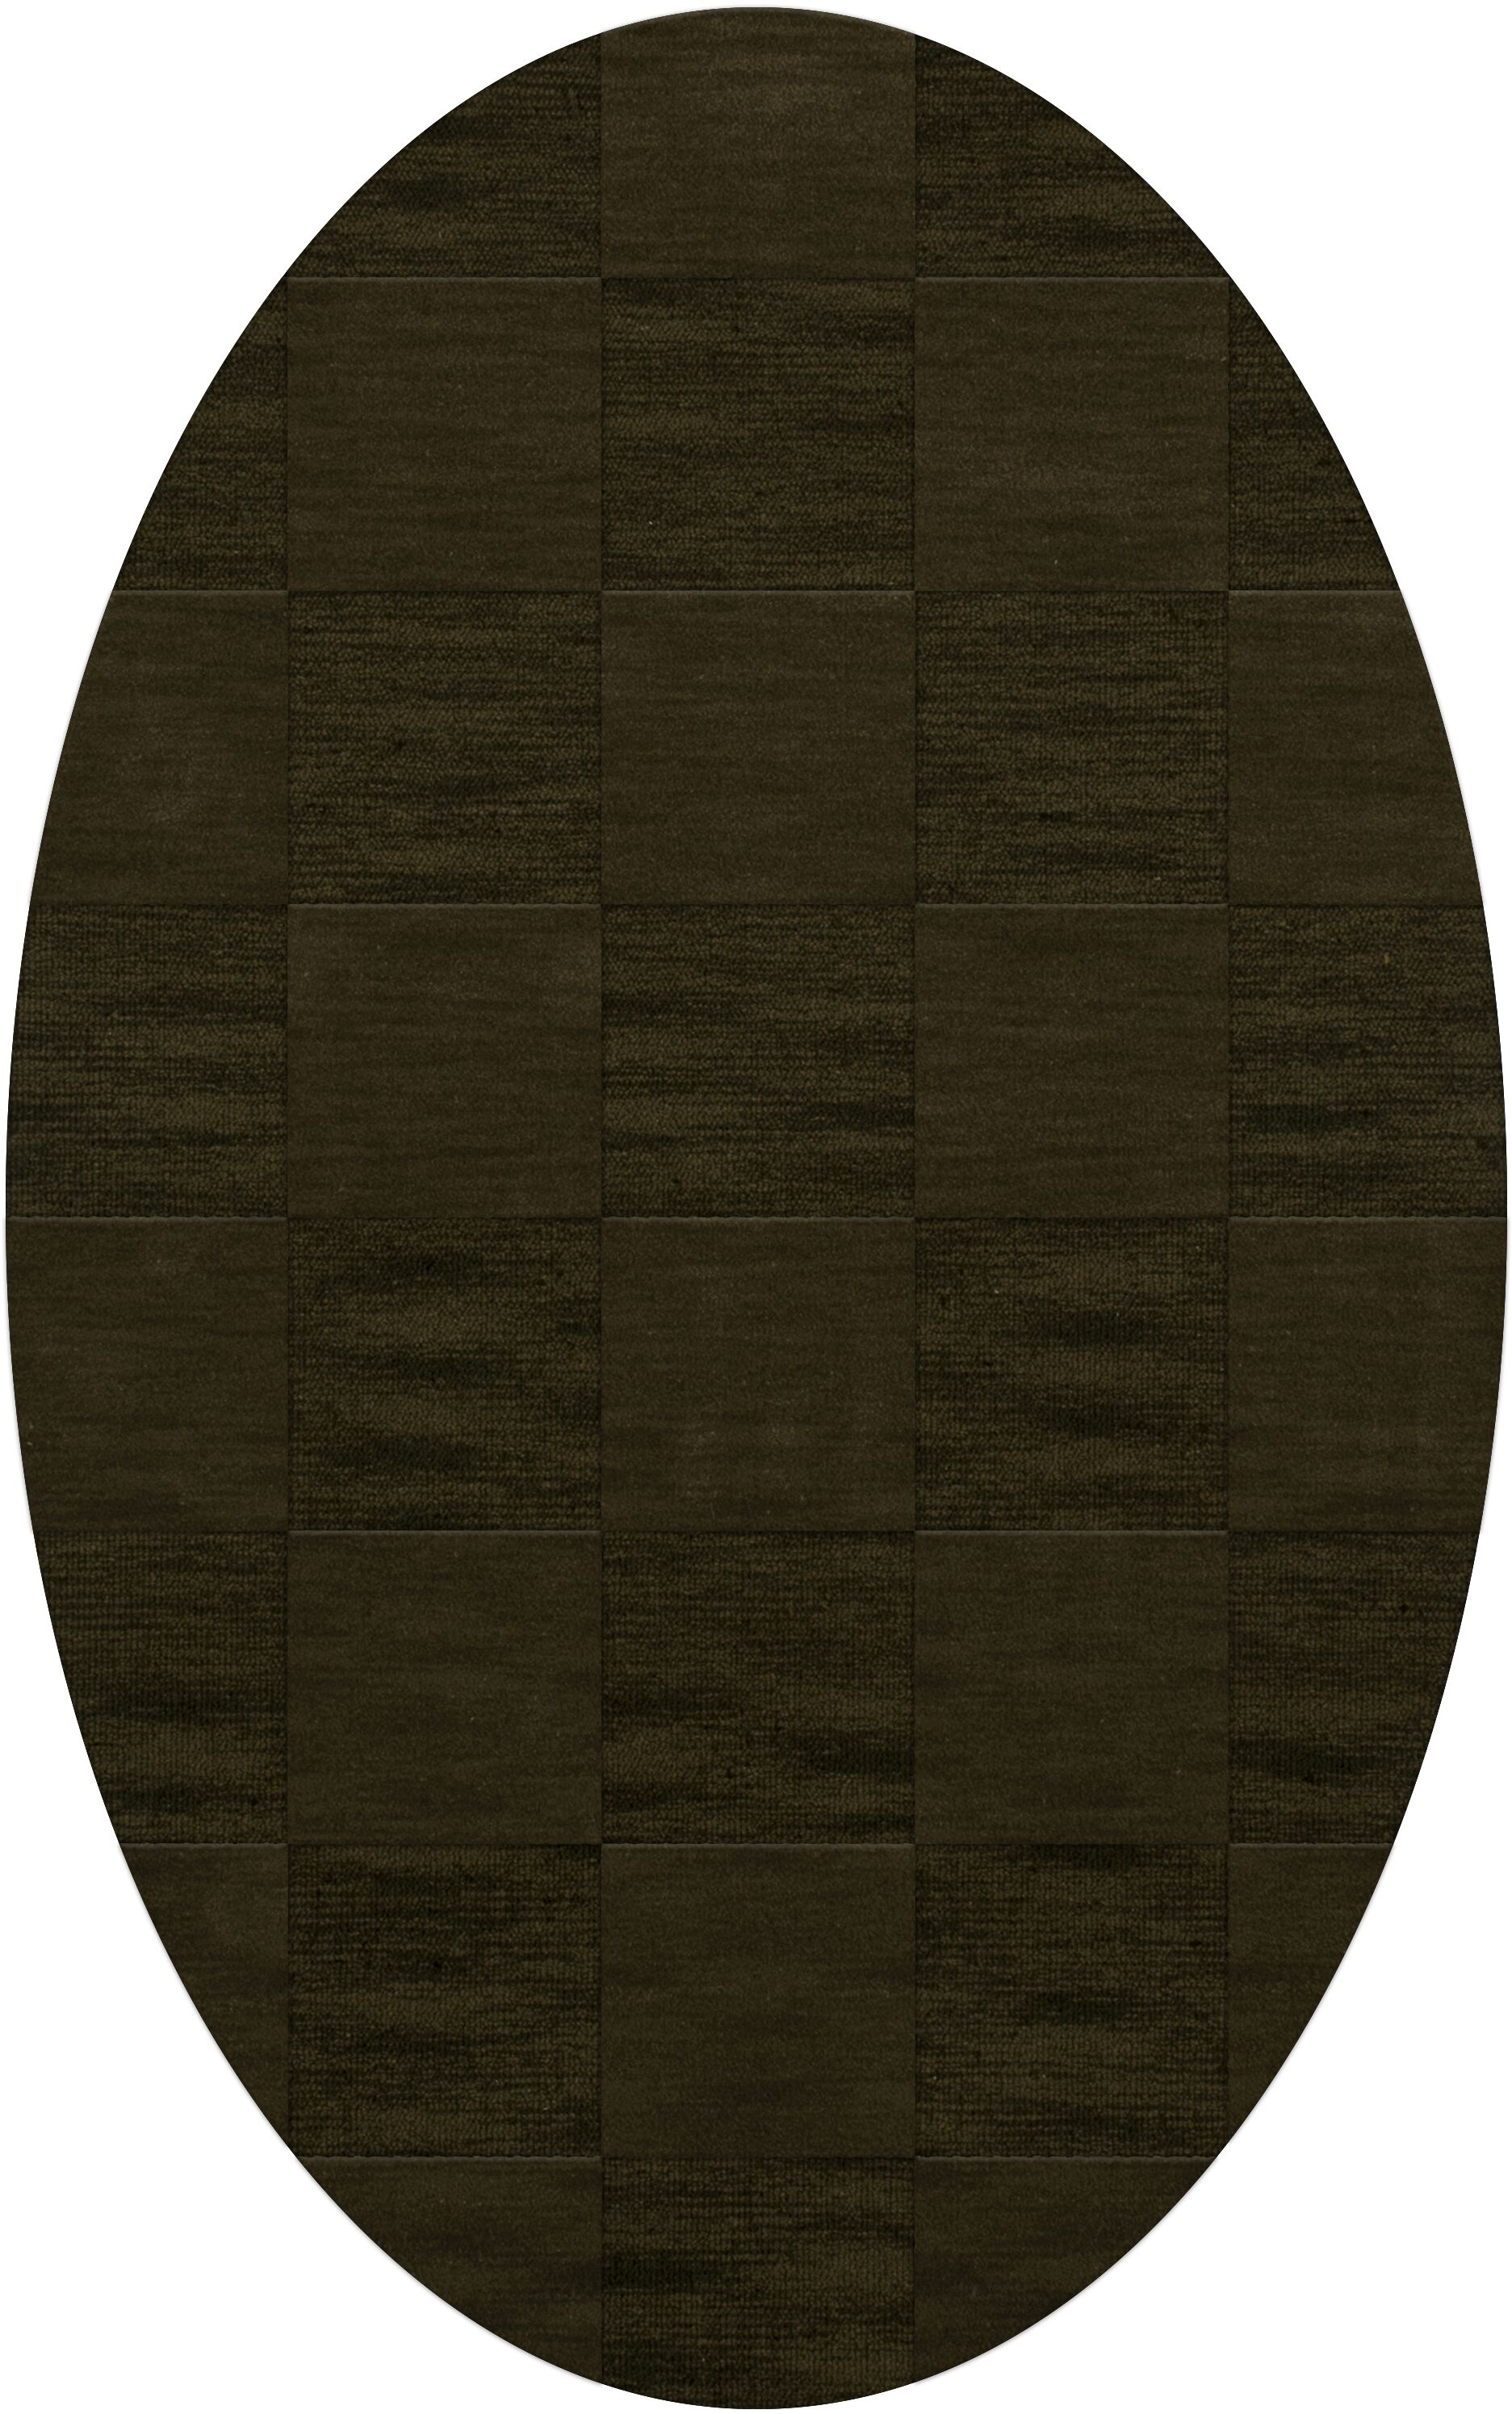 Dover Tufted Wool Olive Area Rug Rug Size: Oval 10' x 14'